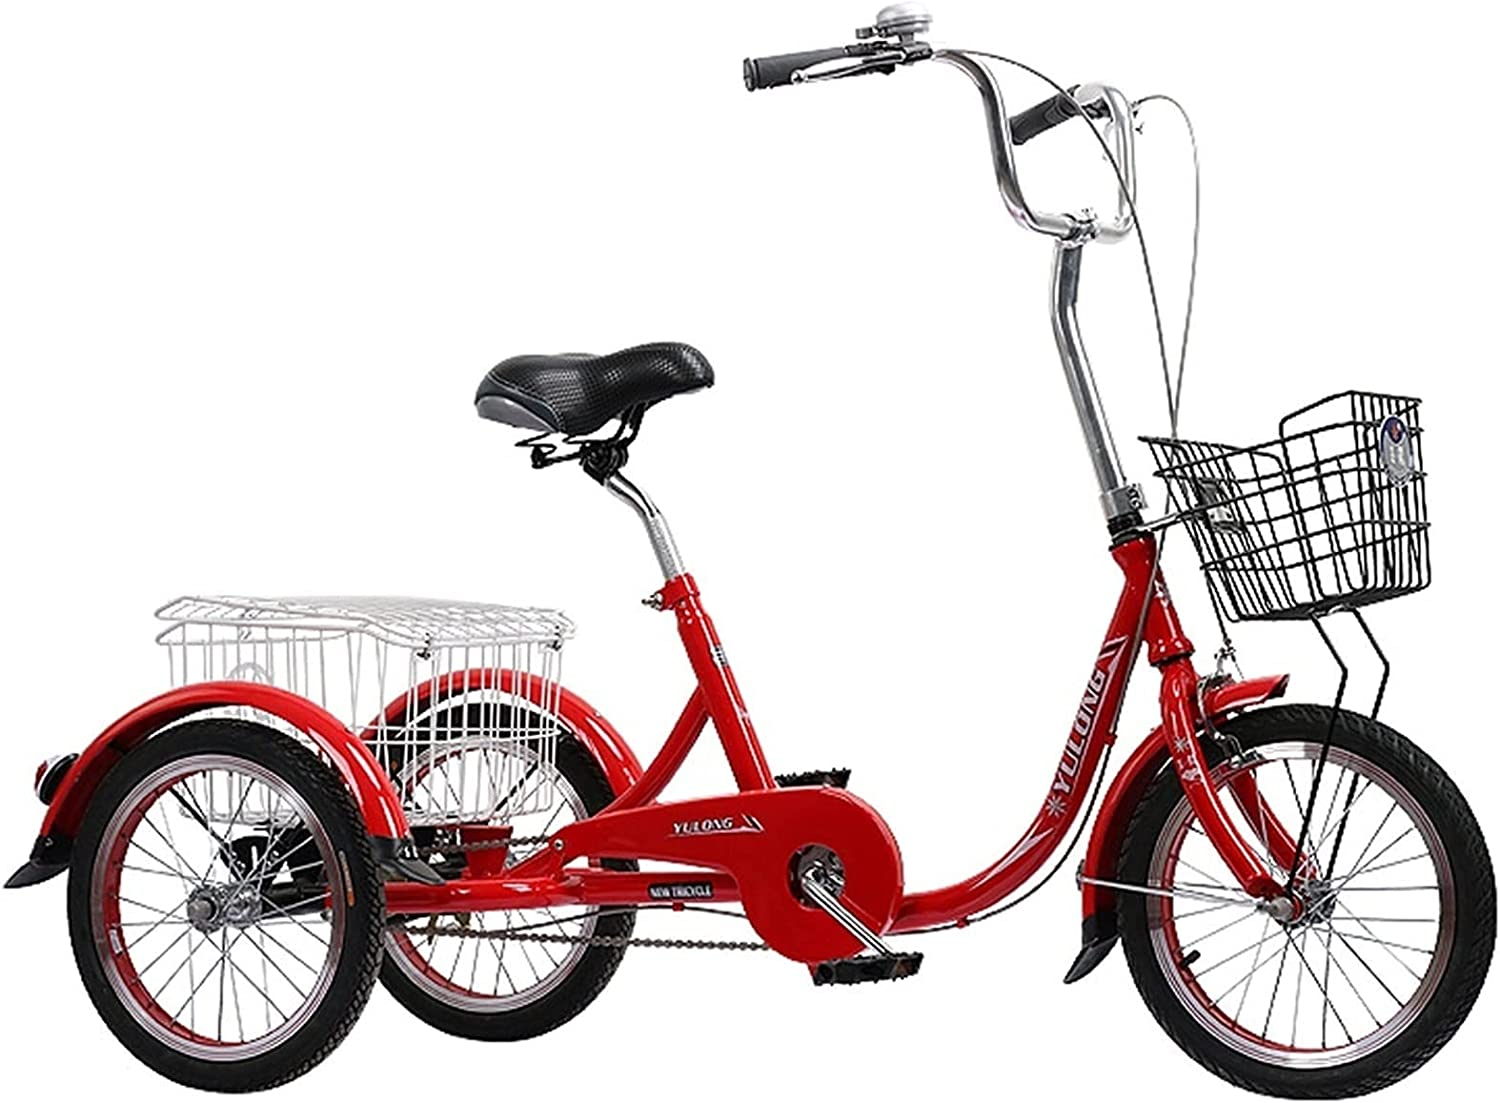 YXYH Max 51% OFF Tricycle for Adult Seniors Women Sp Trike 55% OFF Men 16inch Single